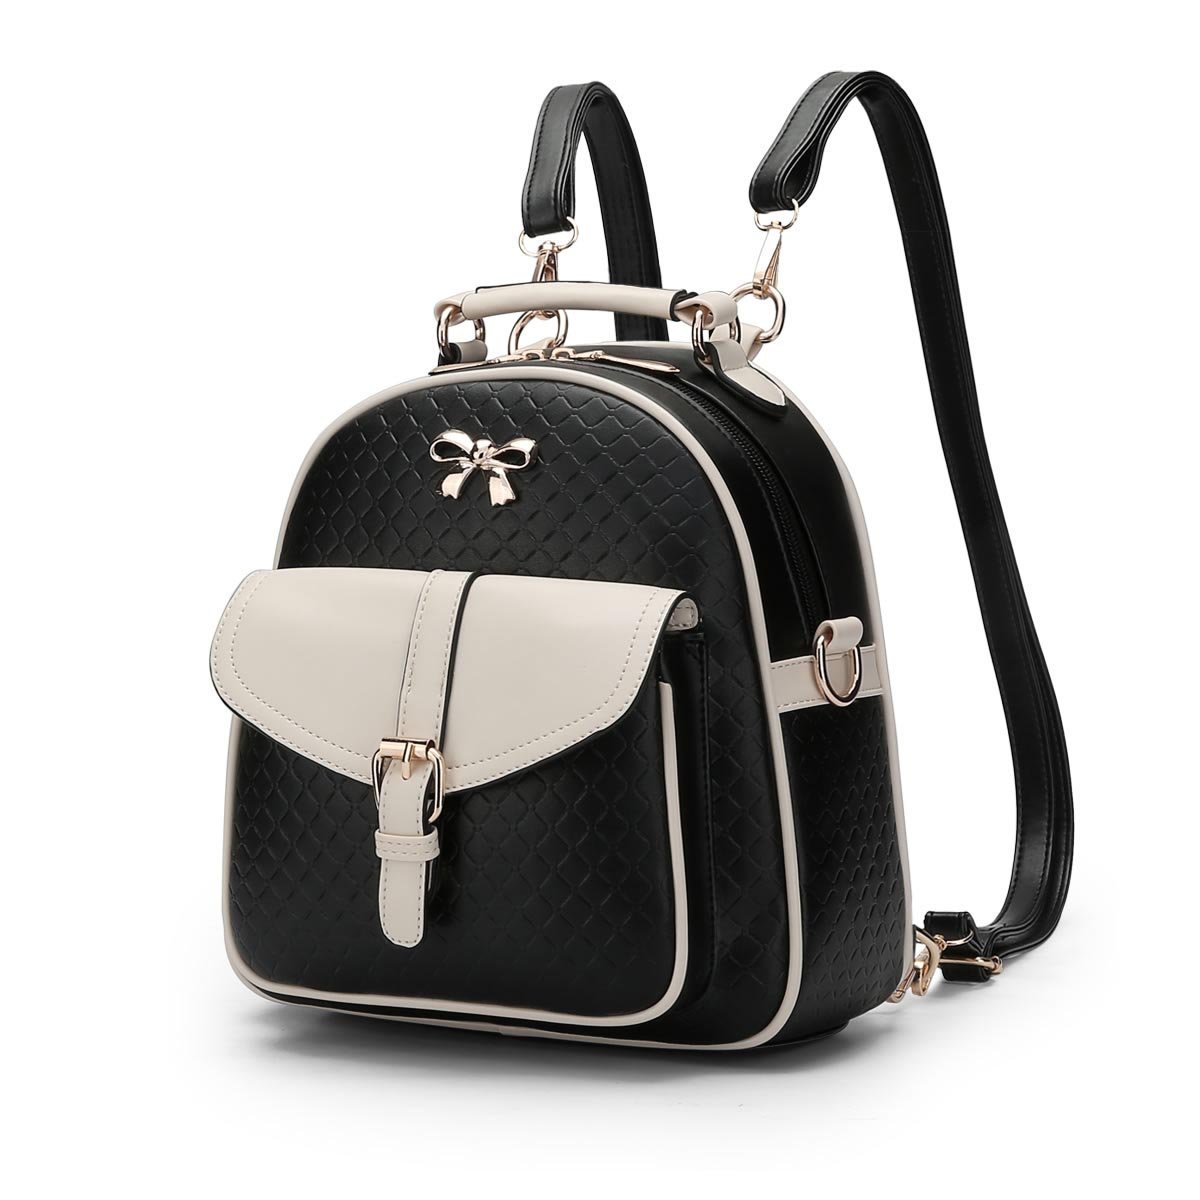 MSZYZ Women's shoulder bag spring and summer young girl's small backpack,Coloured black,24.51026CM